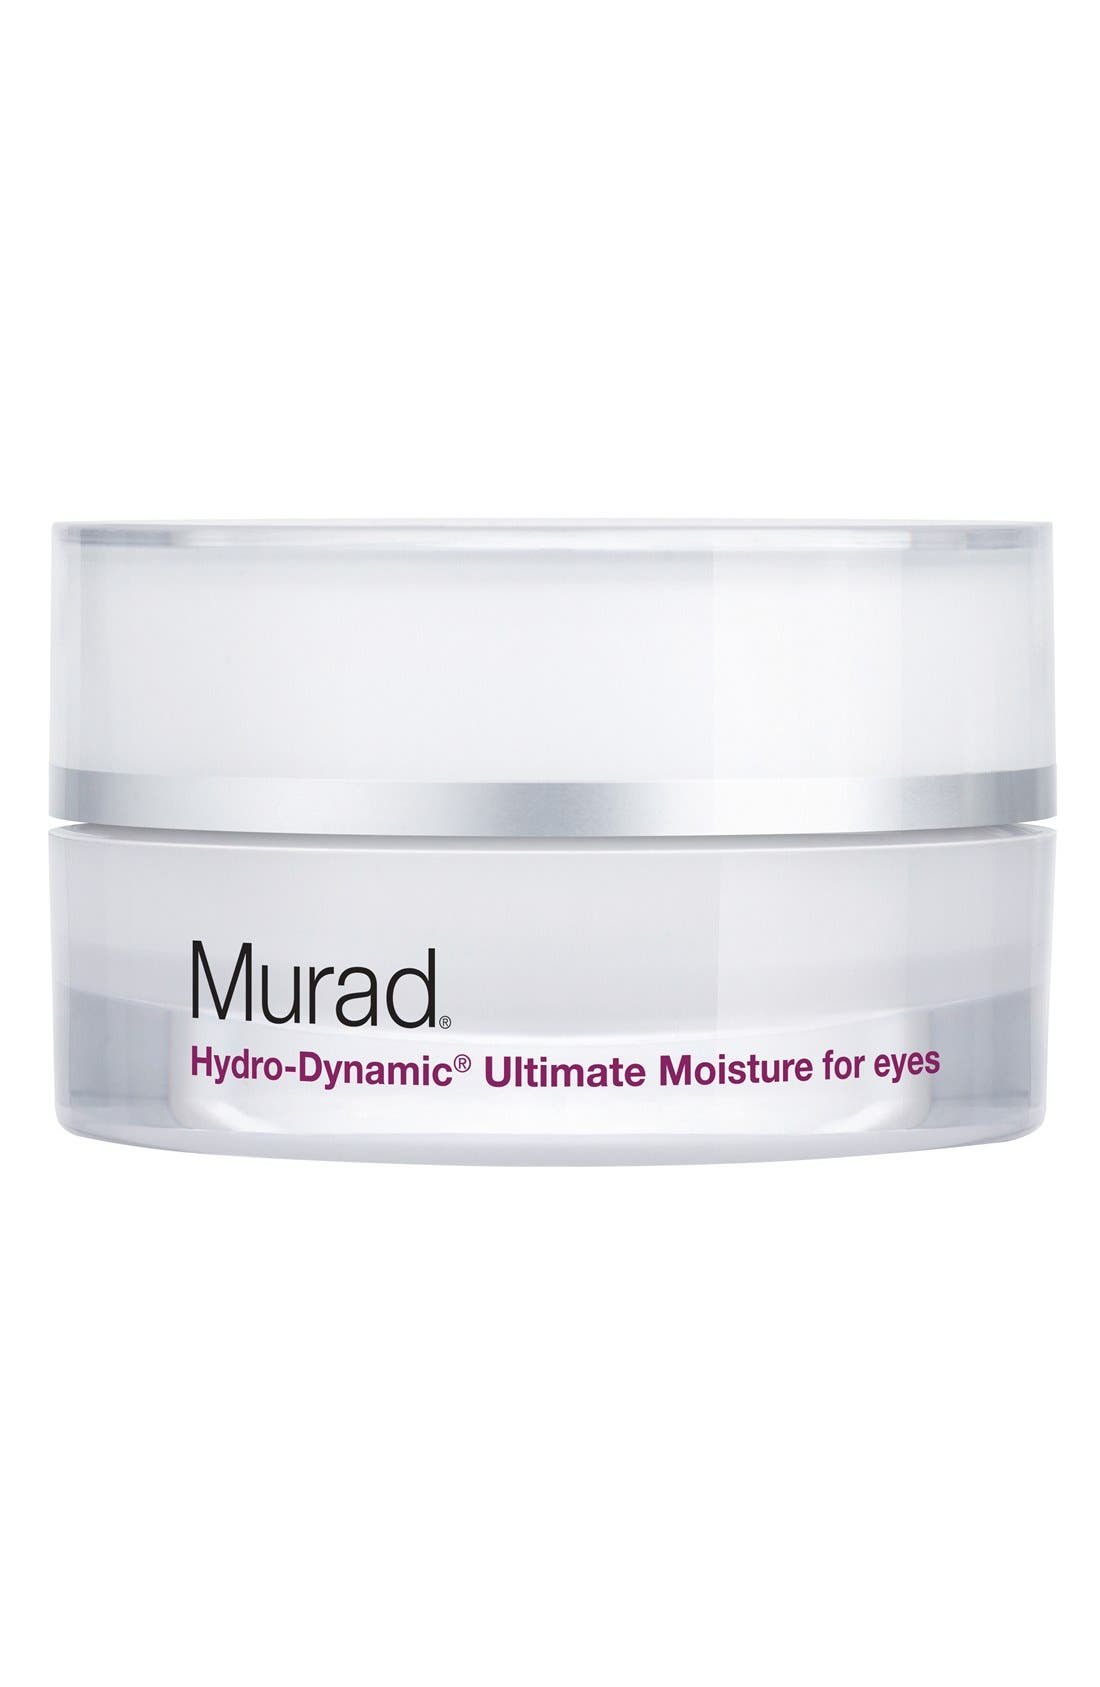 Hydro-Dynamic<sup>®</sup> Ultimate Moisture for Eyes,                             Main thumbnail 1, color,                             NO COLOR